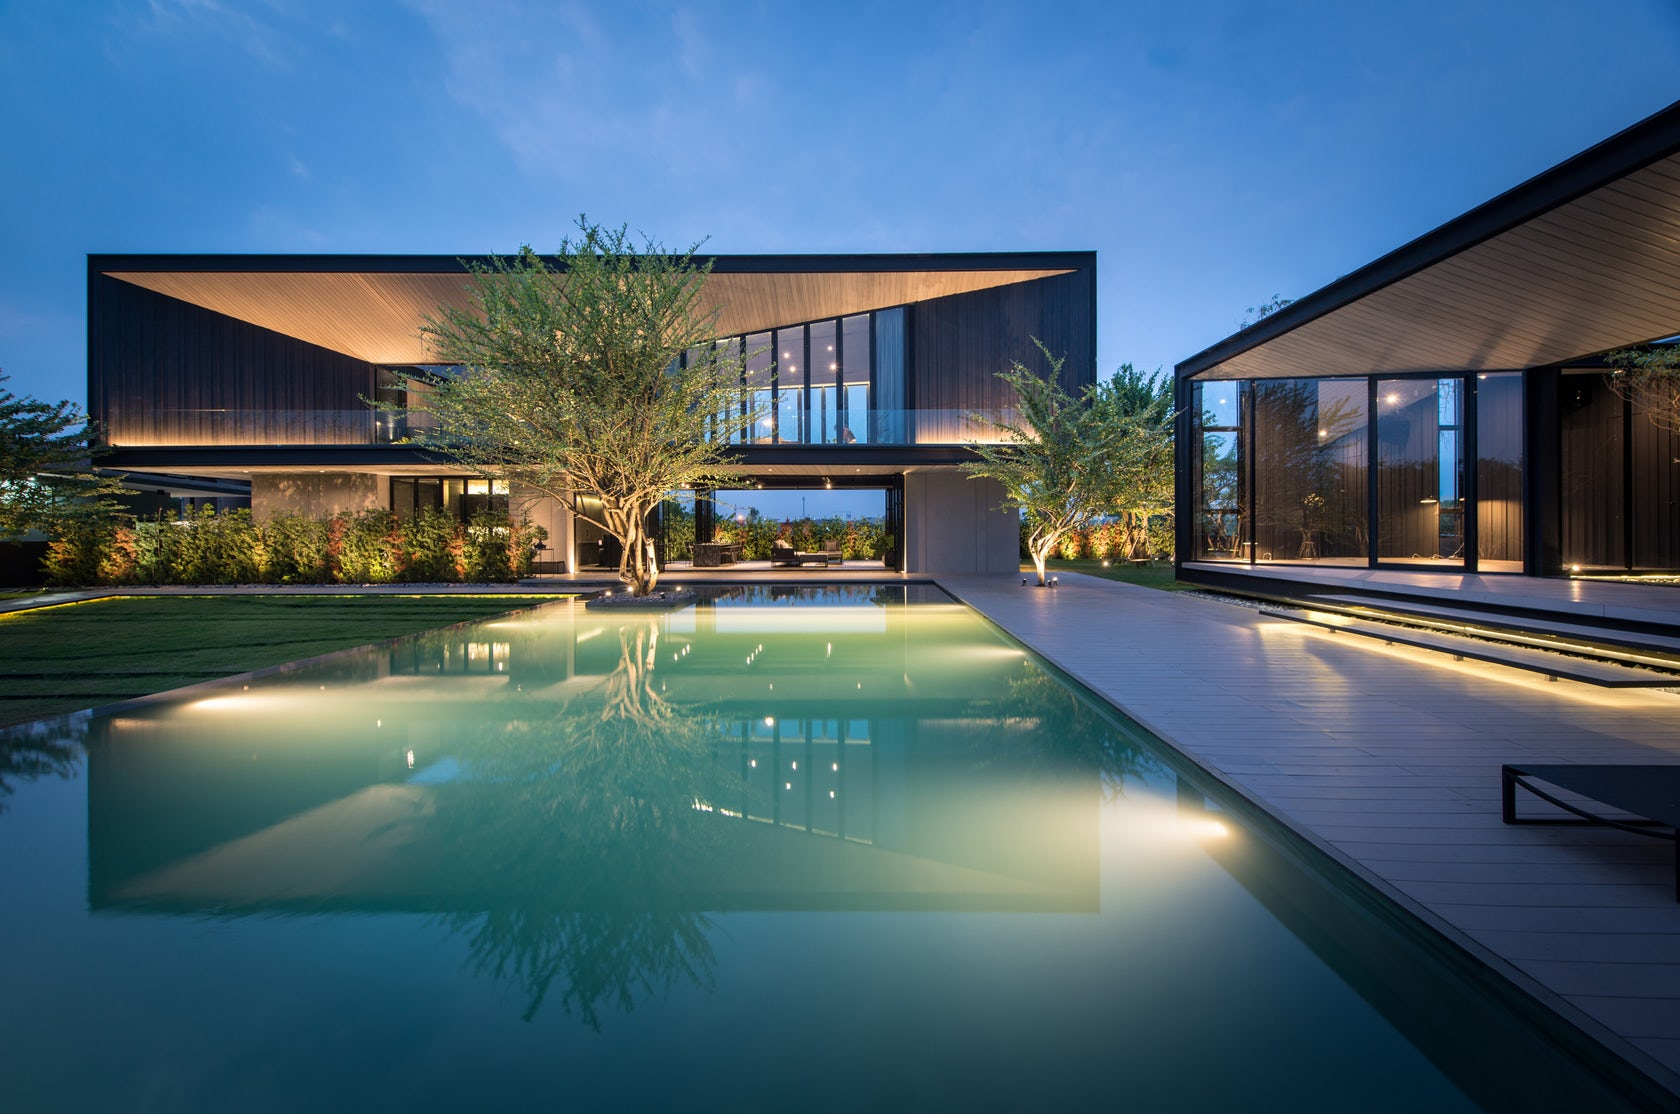 A+ Architecture: These Are the World's Most Beautiful Modern Residences -  Architizer Journal